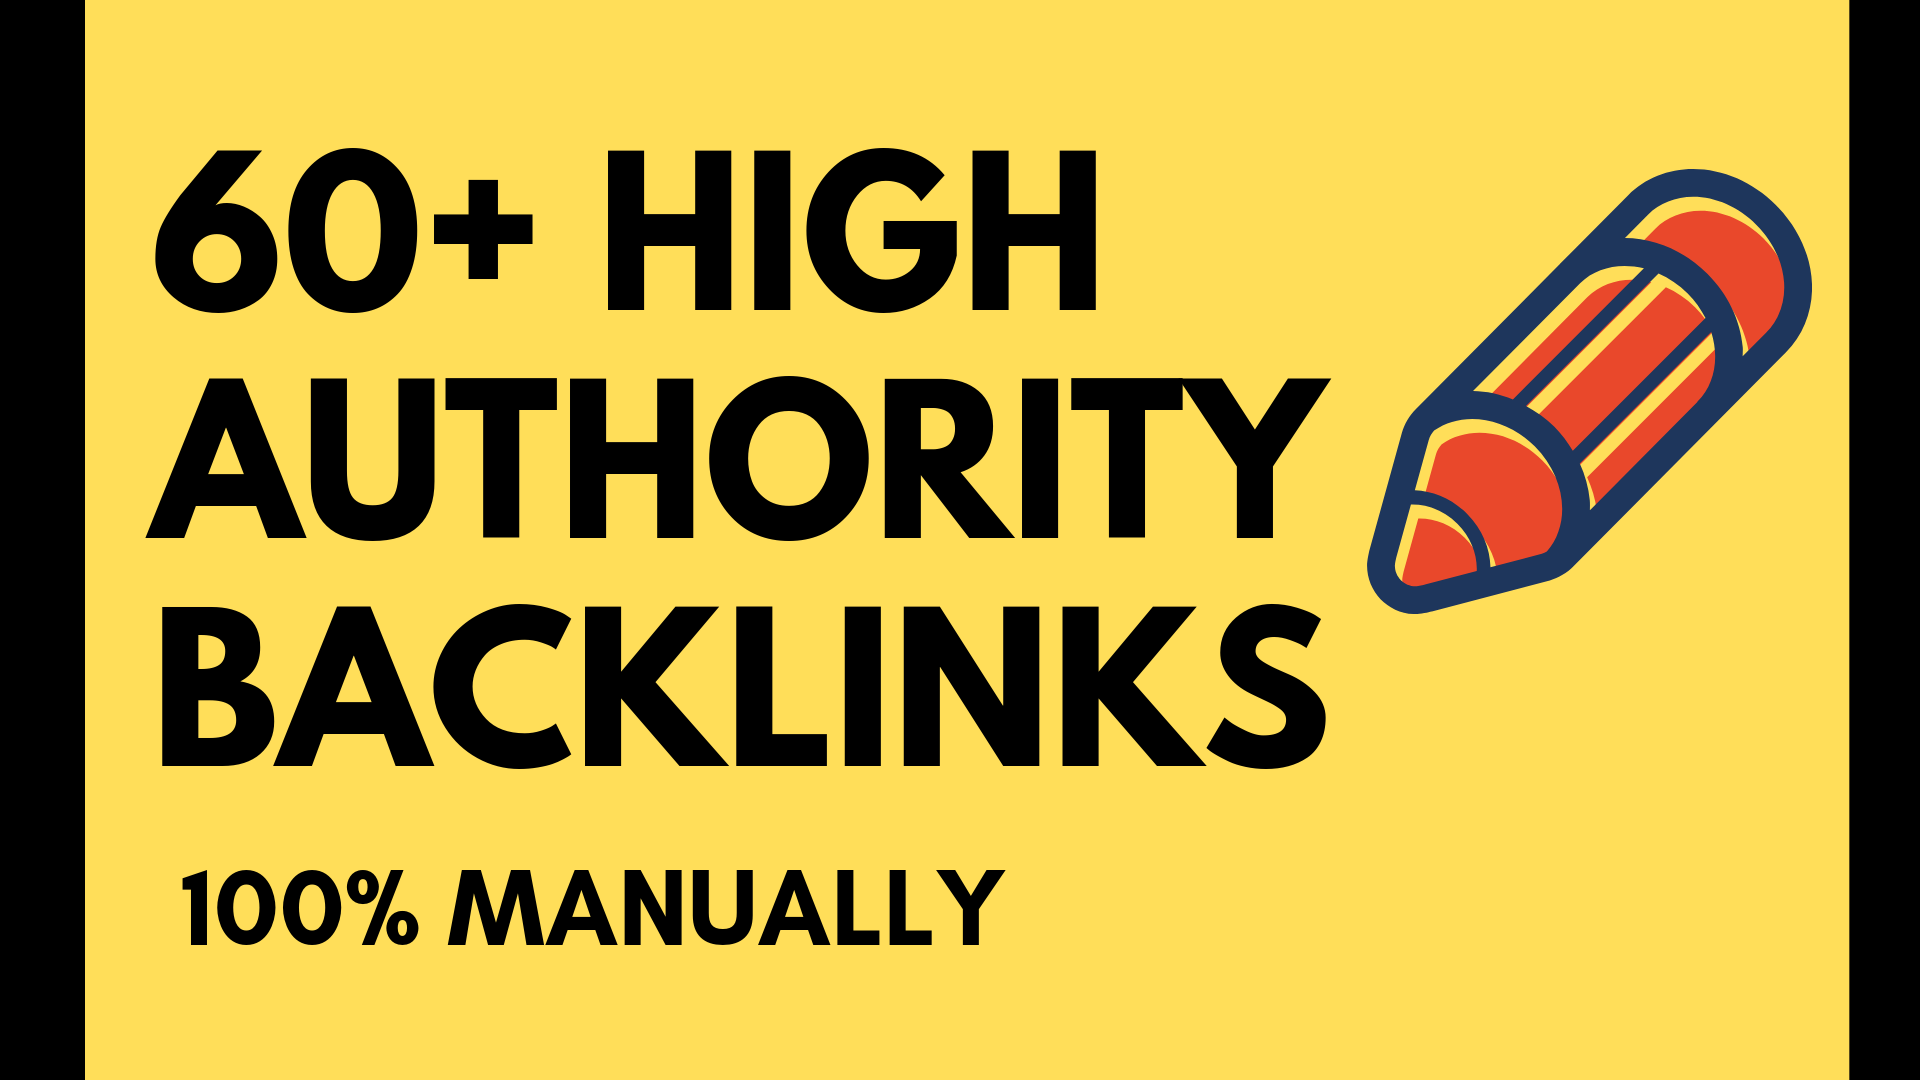 I Give You 60 High Authority Backlinks Manually